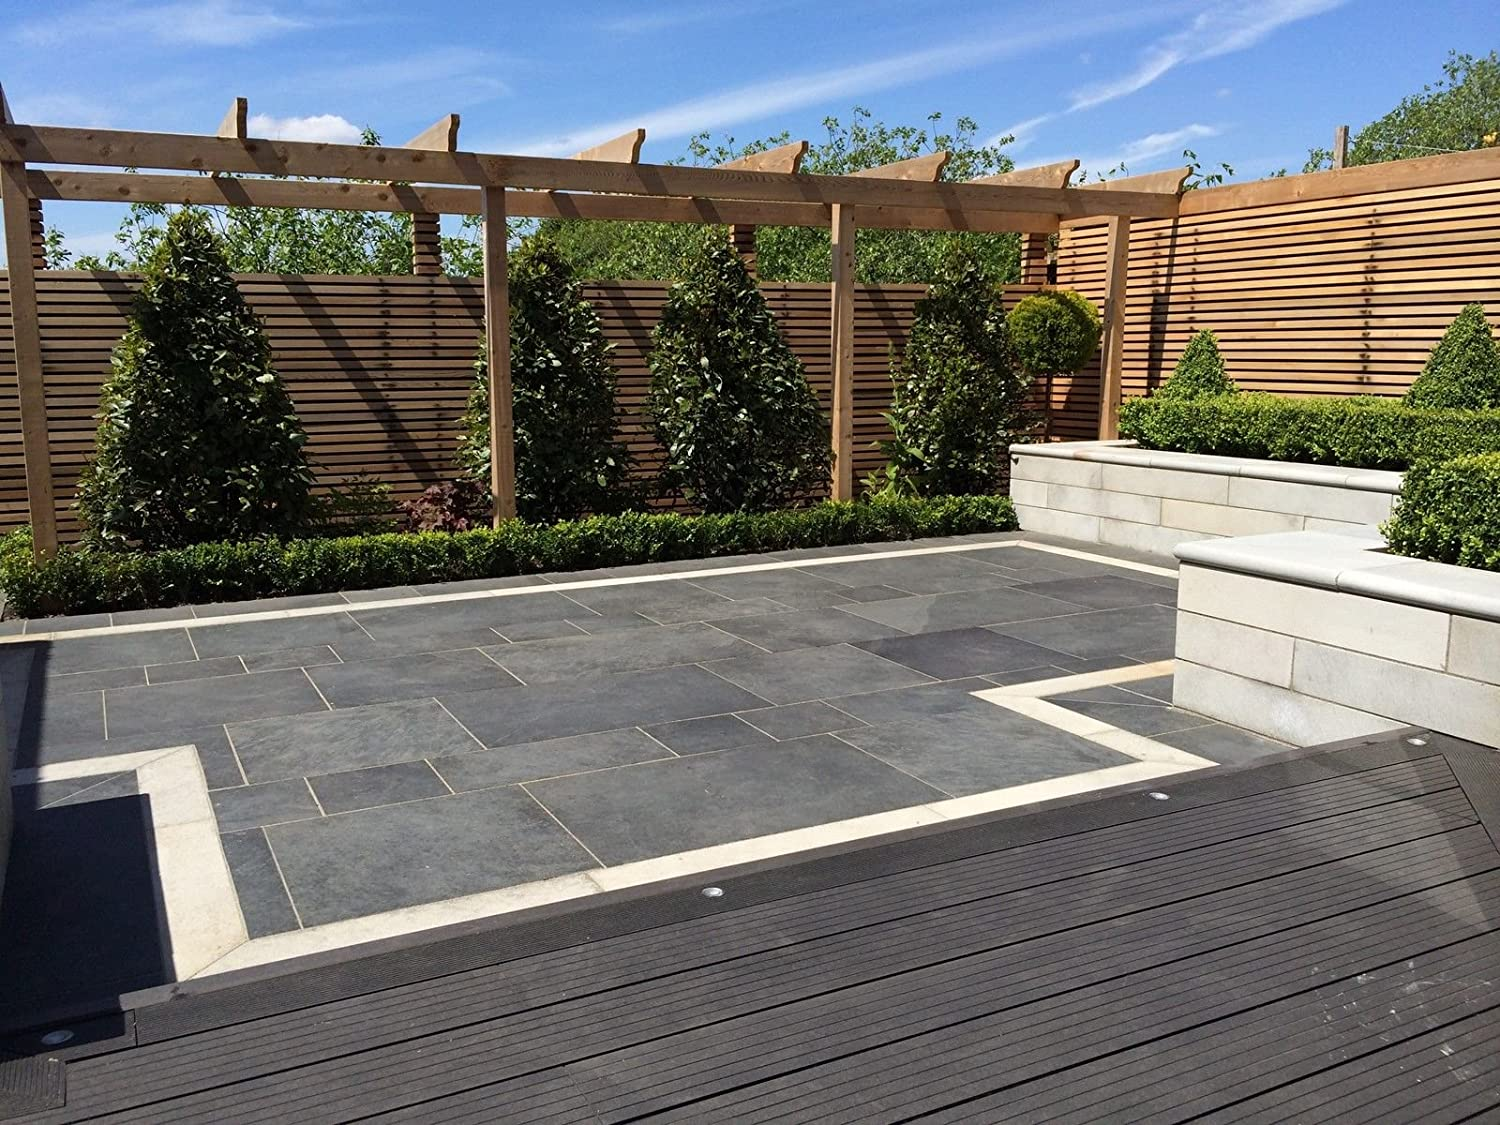 Composite Decking Charcoal 35 Square Meter Pack (incl. fixings and screws)